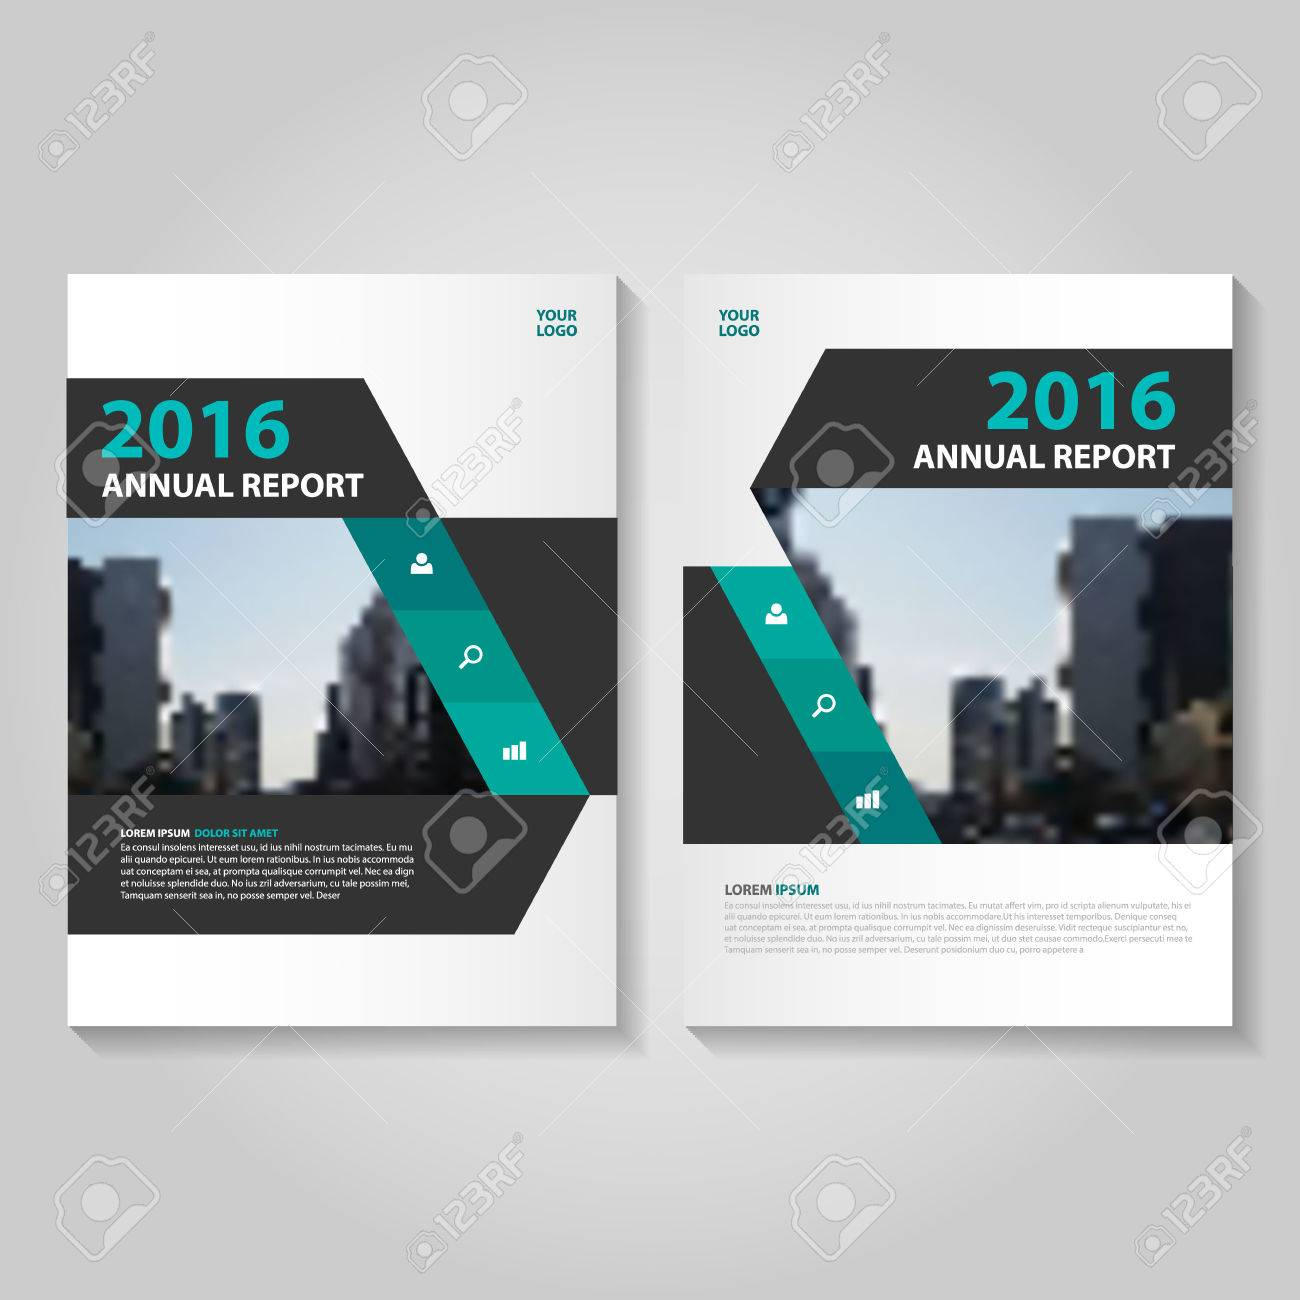 elegance green black annual report leaflet brochure template design book cover layout design abstract